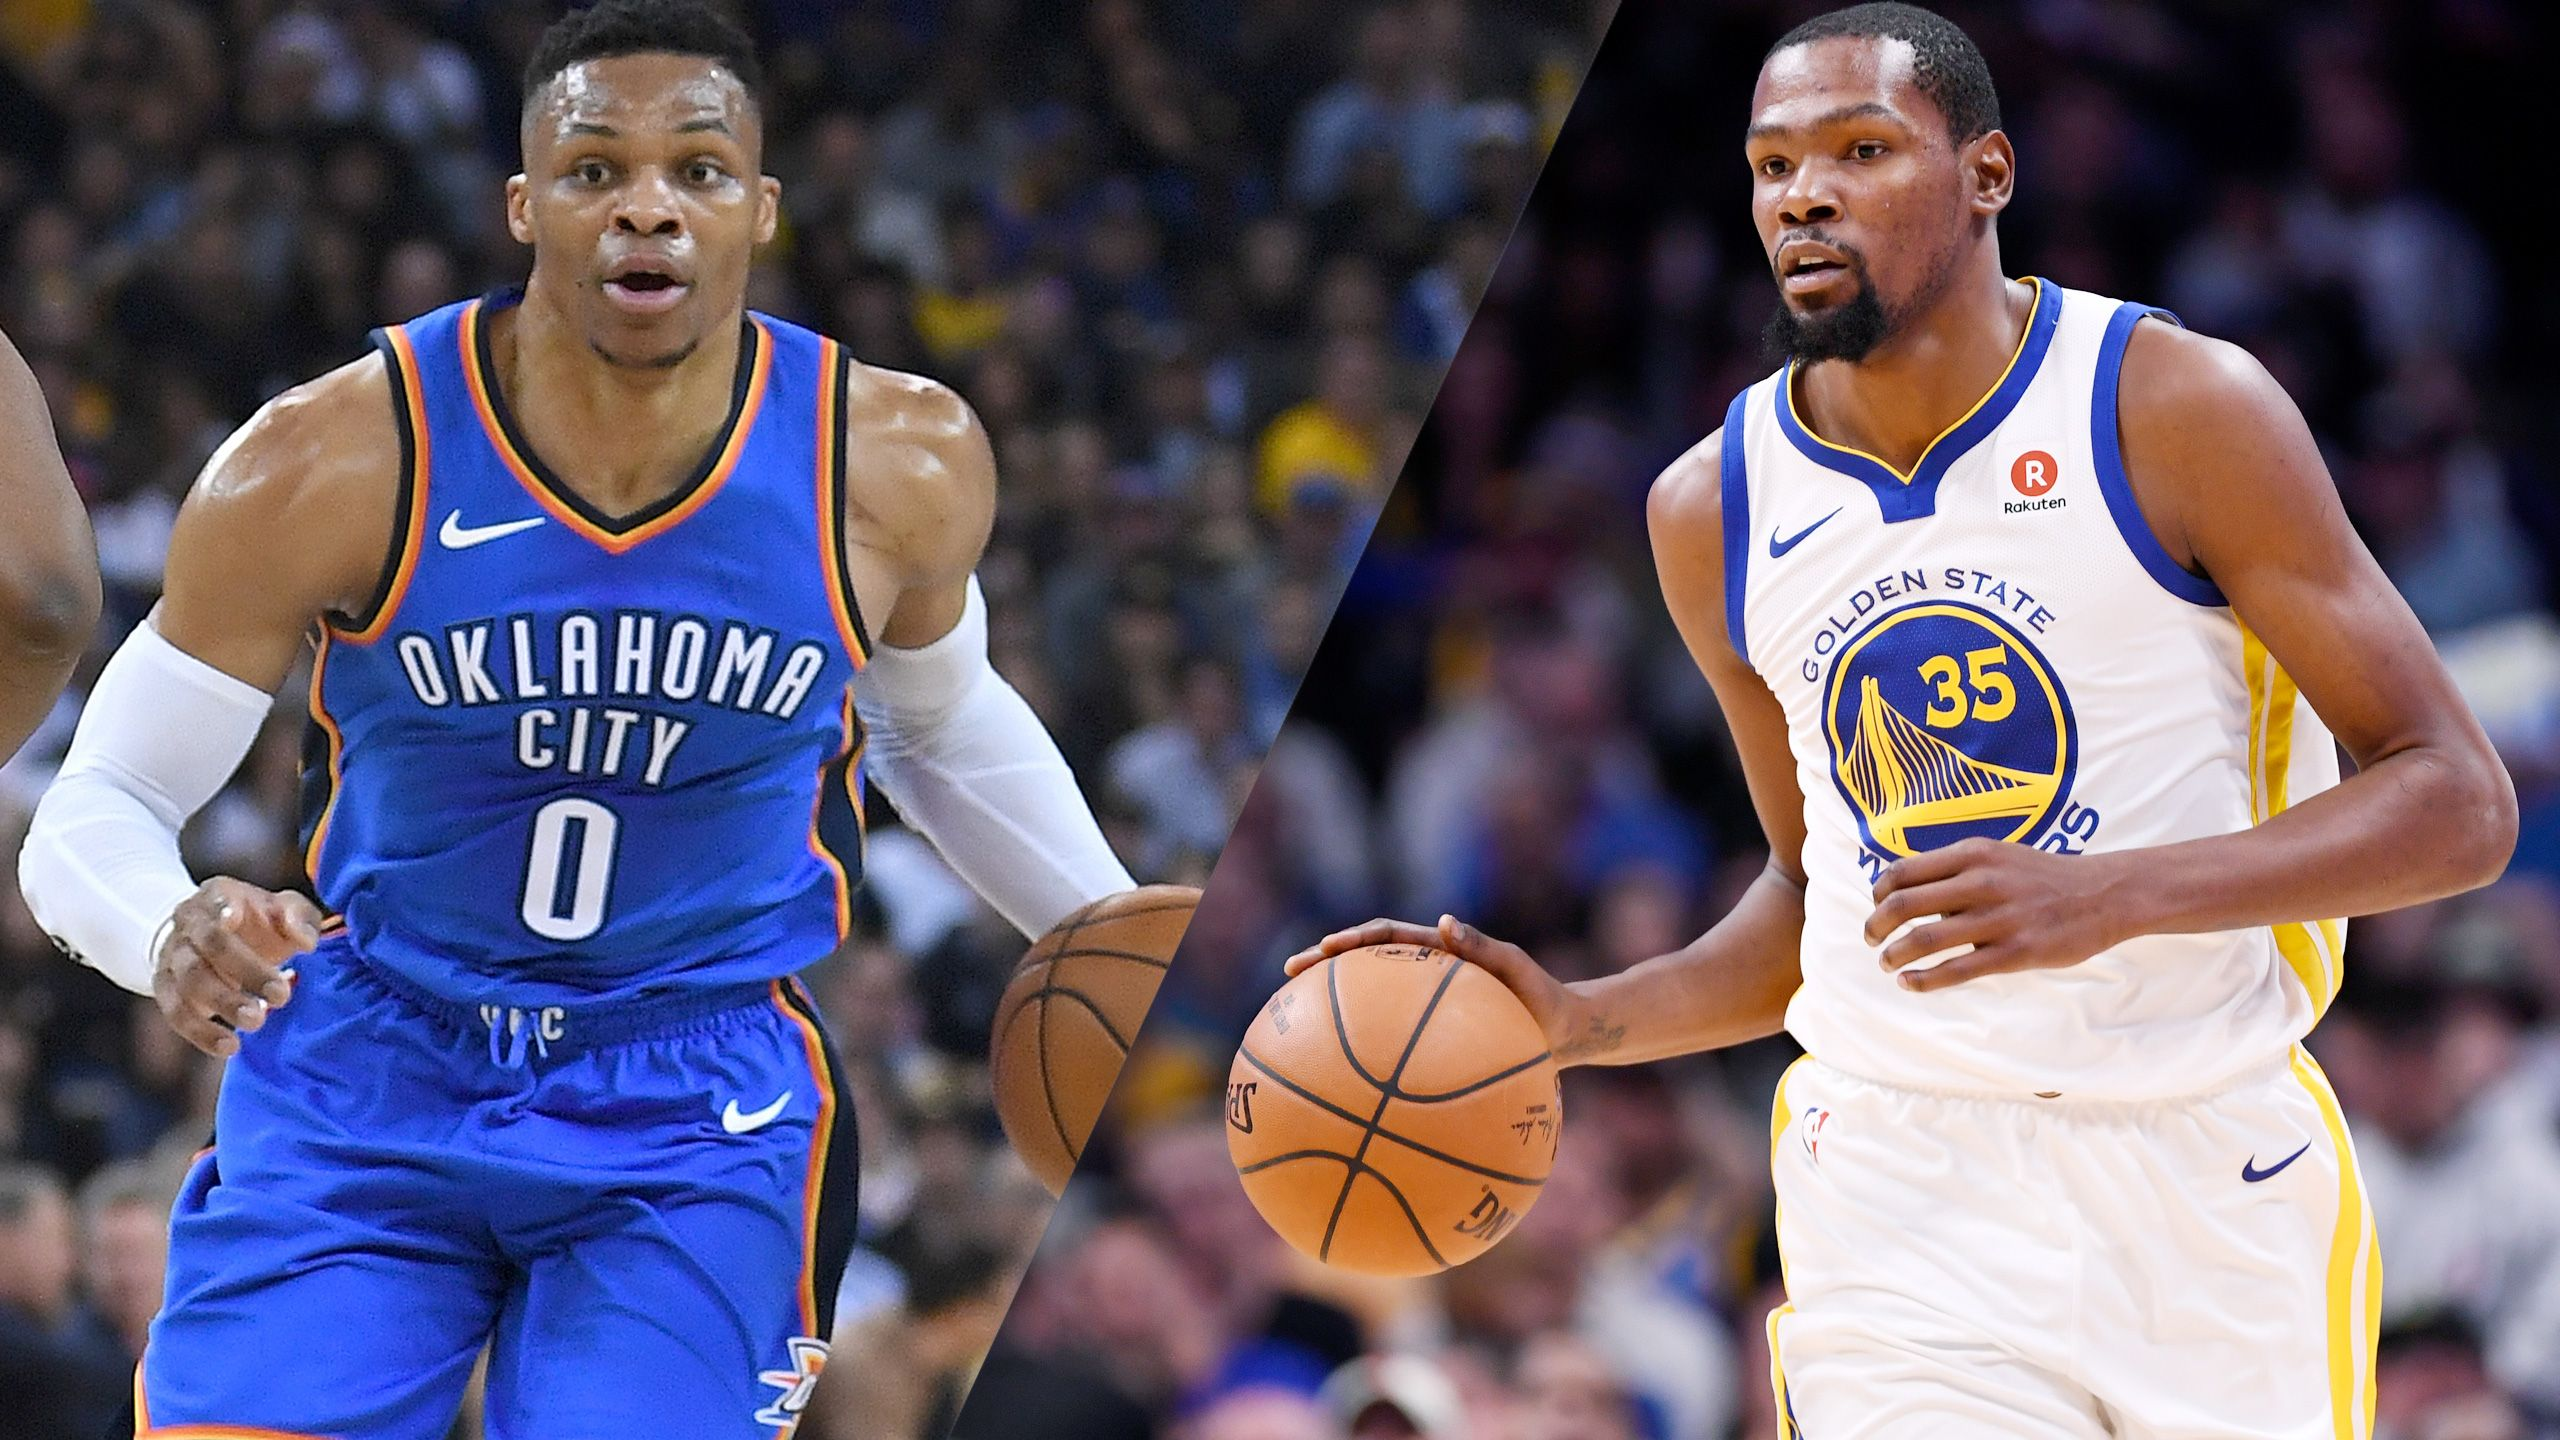 Oklahoma City Thunder vs. Golden State Warriors